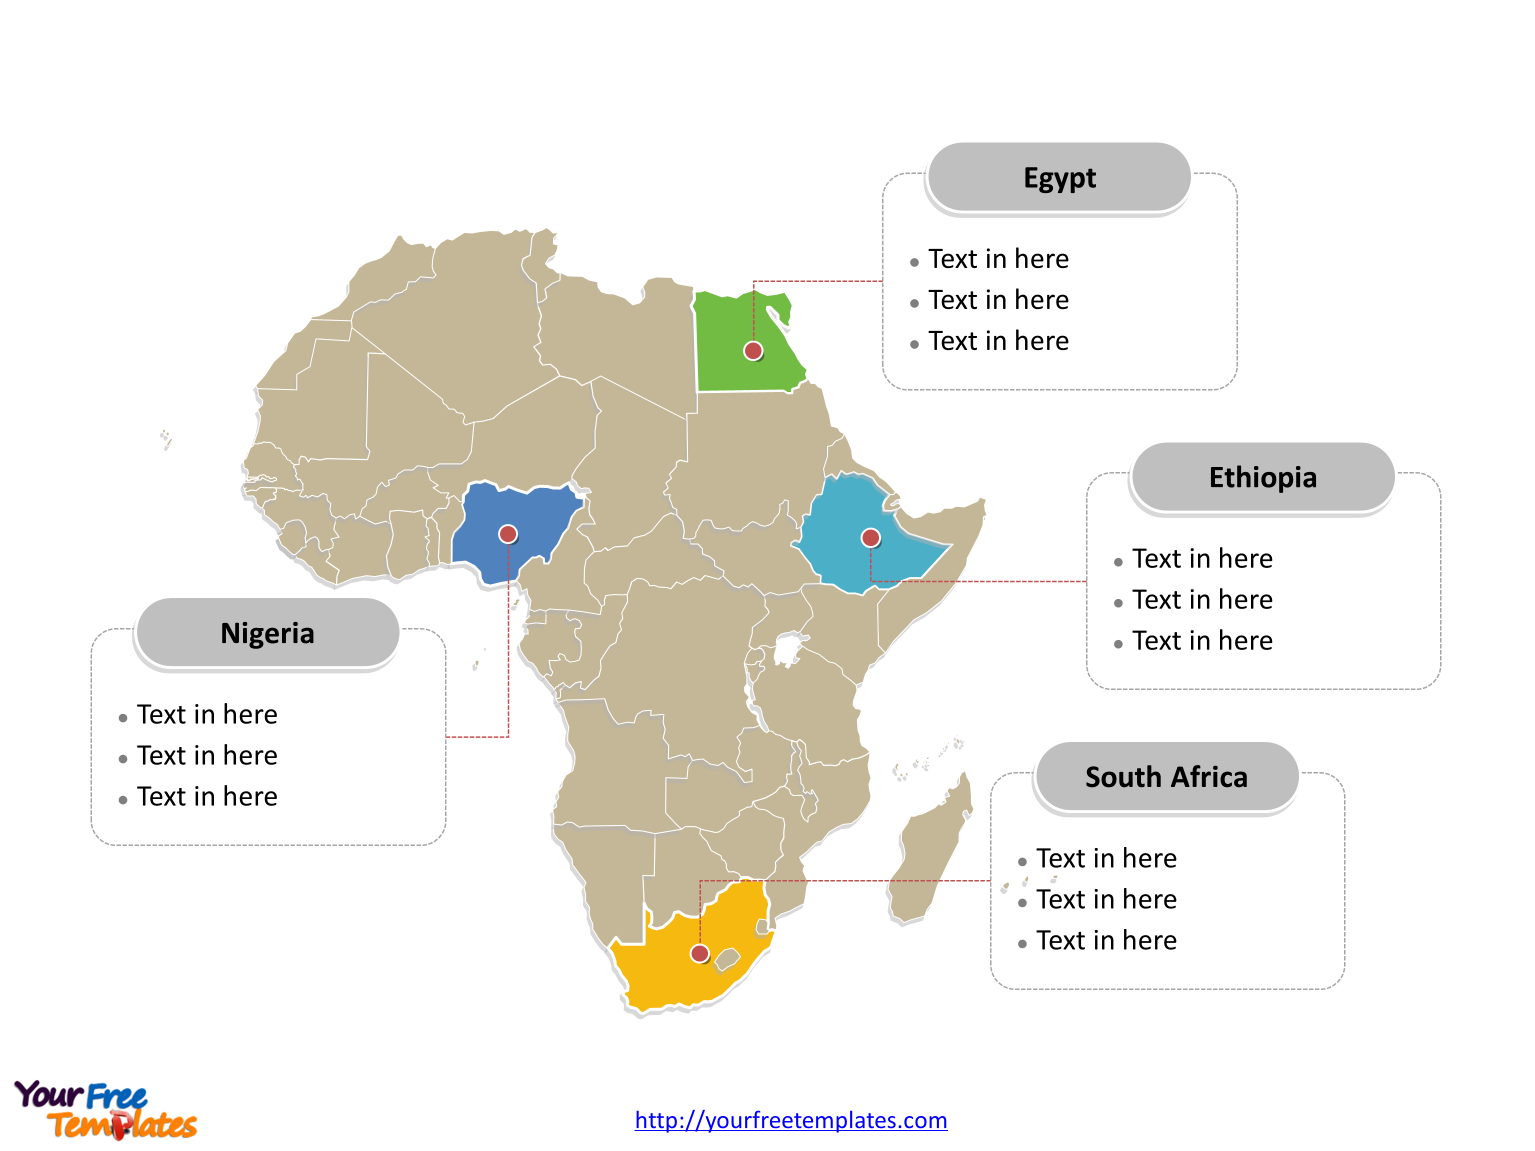 Immediately free download editable africa outline and political map immediately free map of africa with outline and countries and africa map free templates in powerpoint format no registration needed toneelgroepblik Images